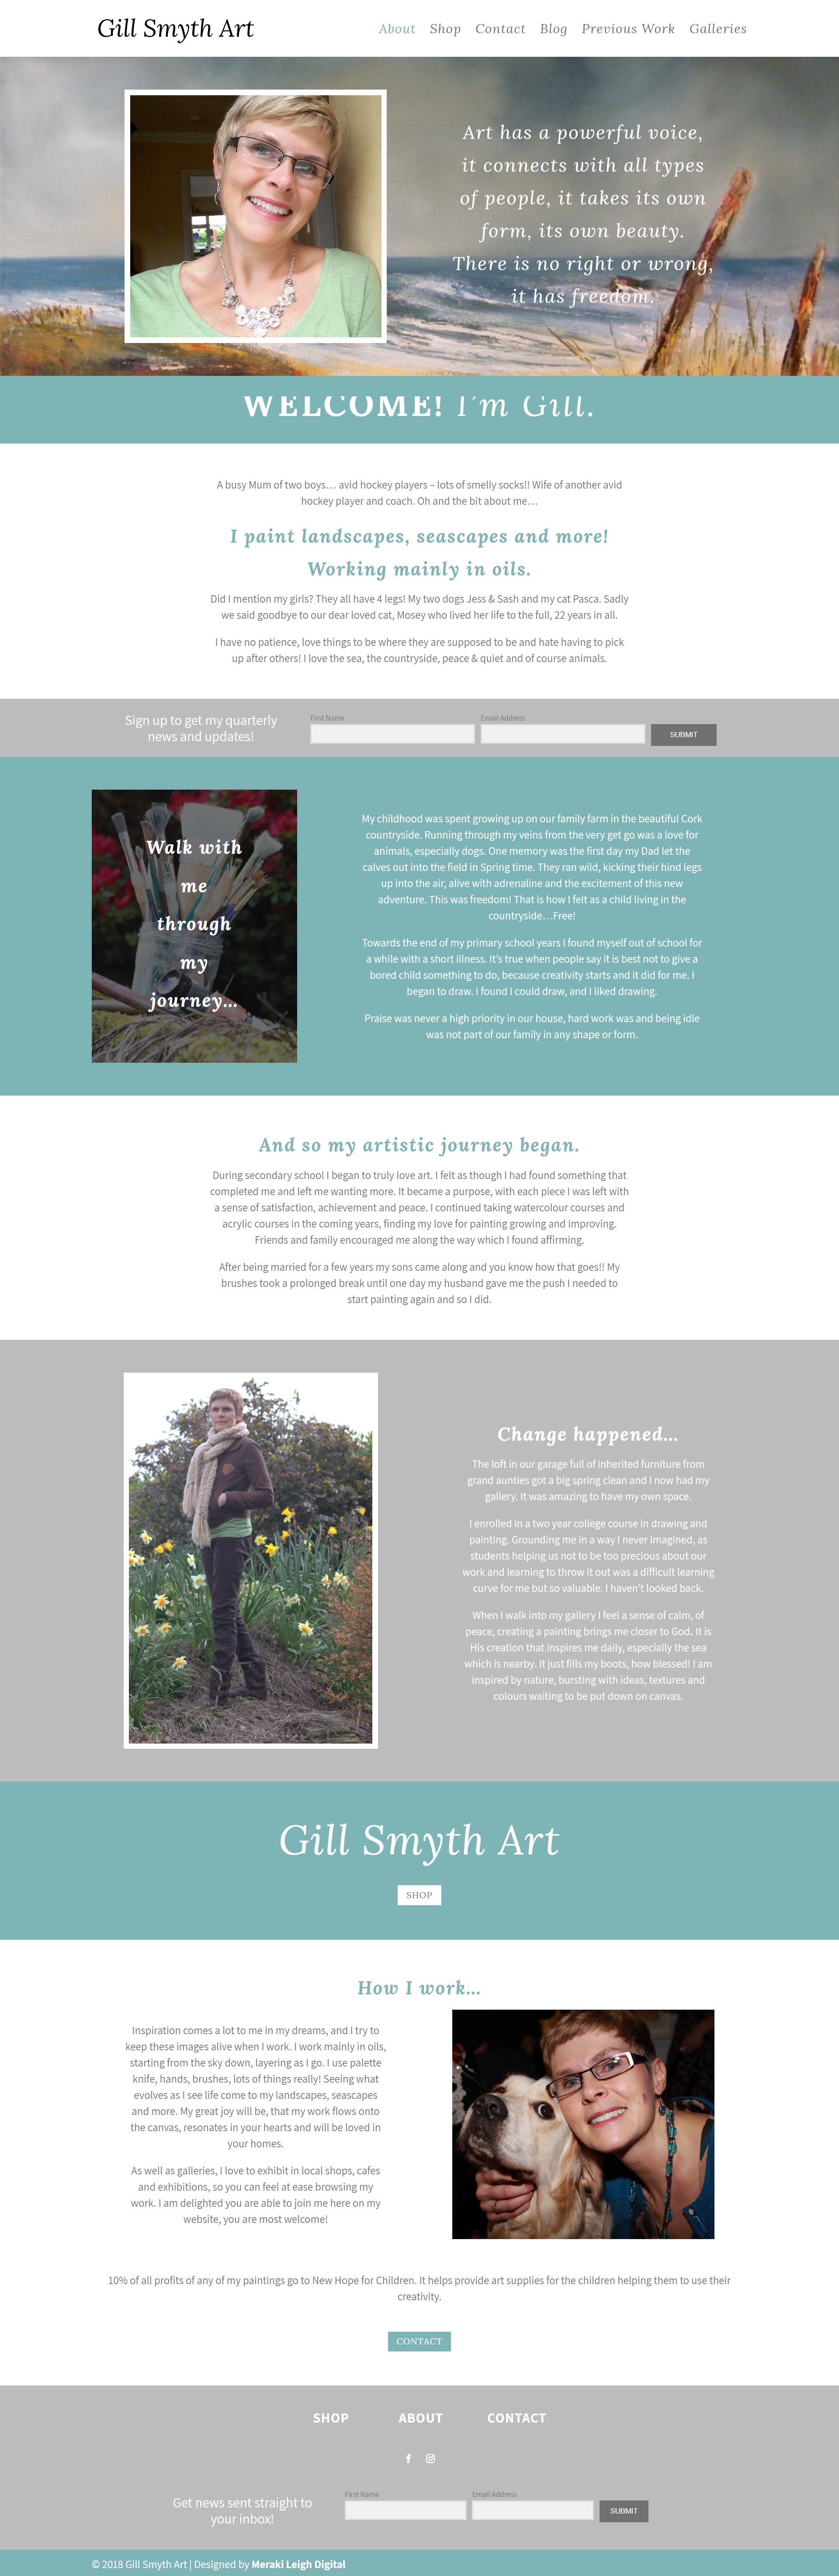 Kristen Leigh | WordPress Web Design Studio | Gill Smyth Art Portfolio Piece | About Page